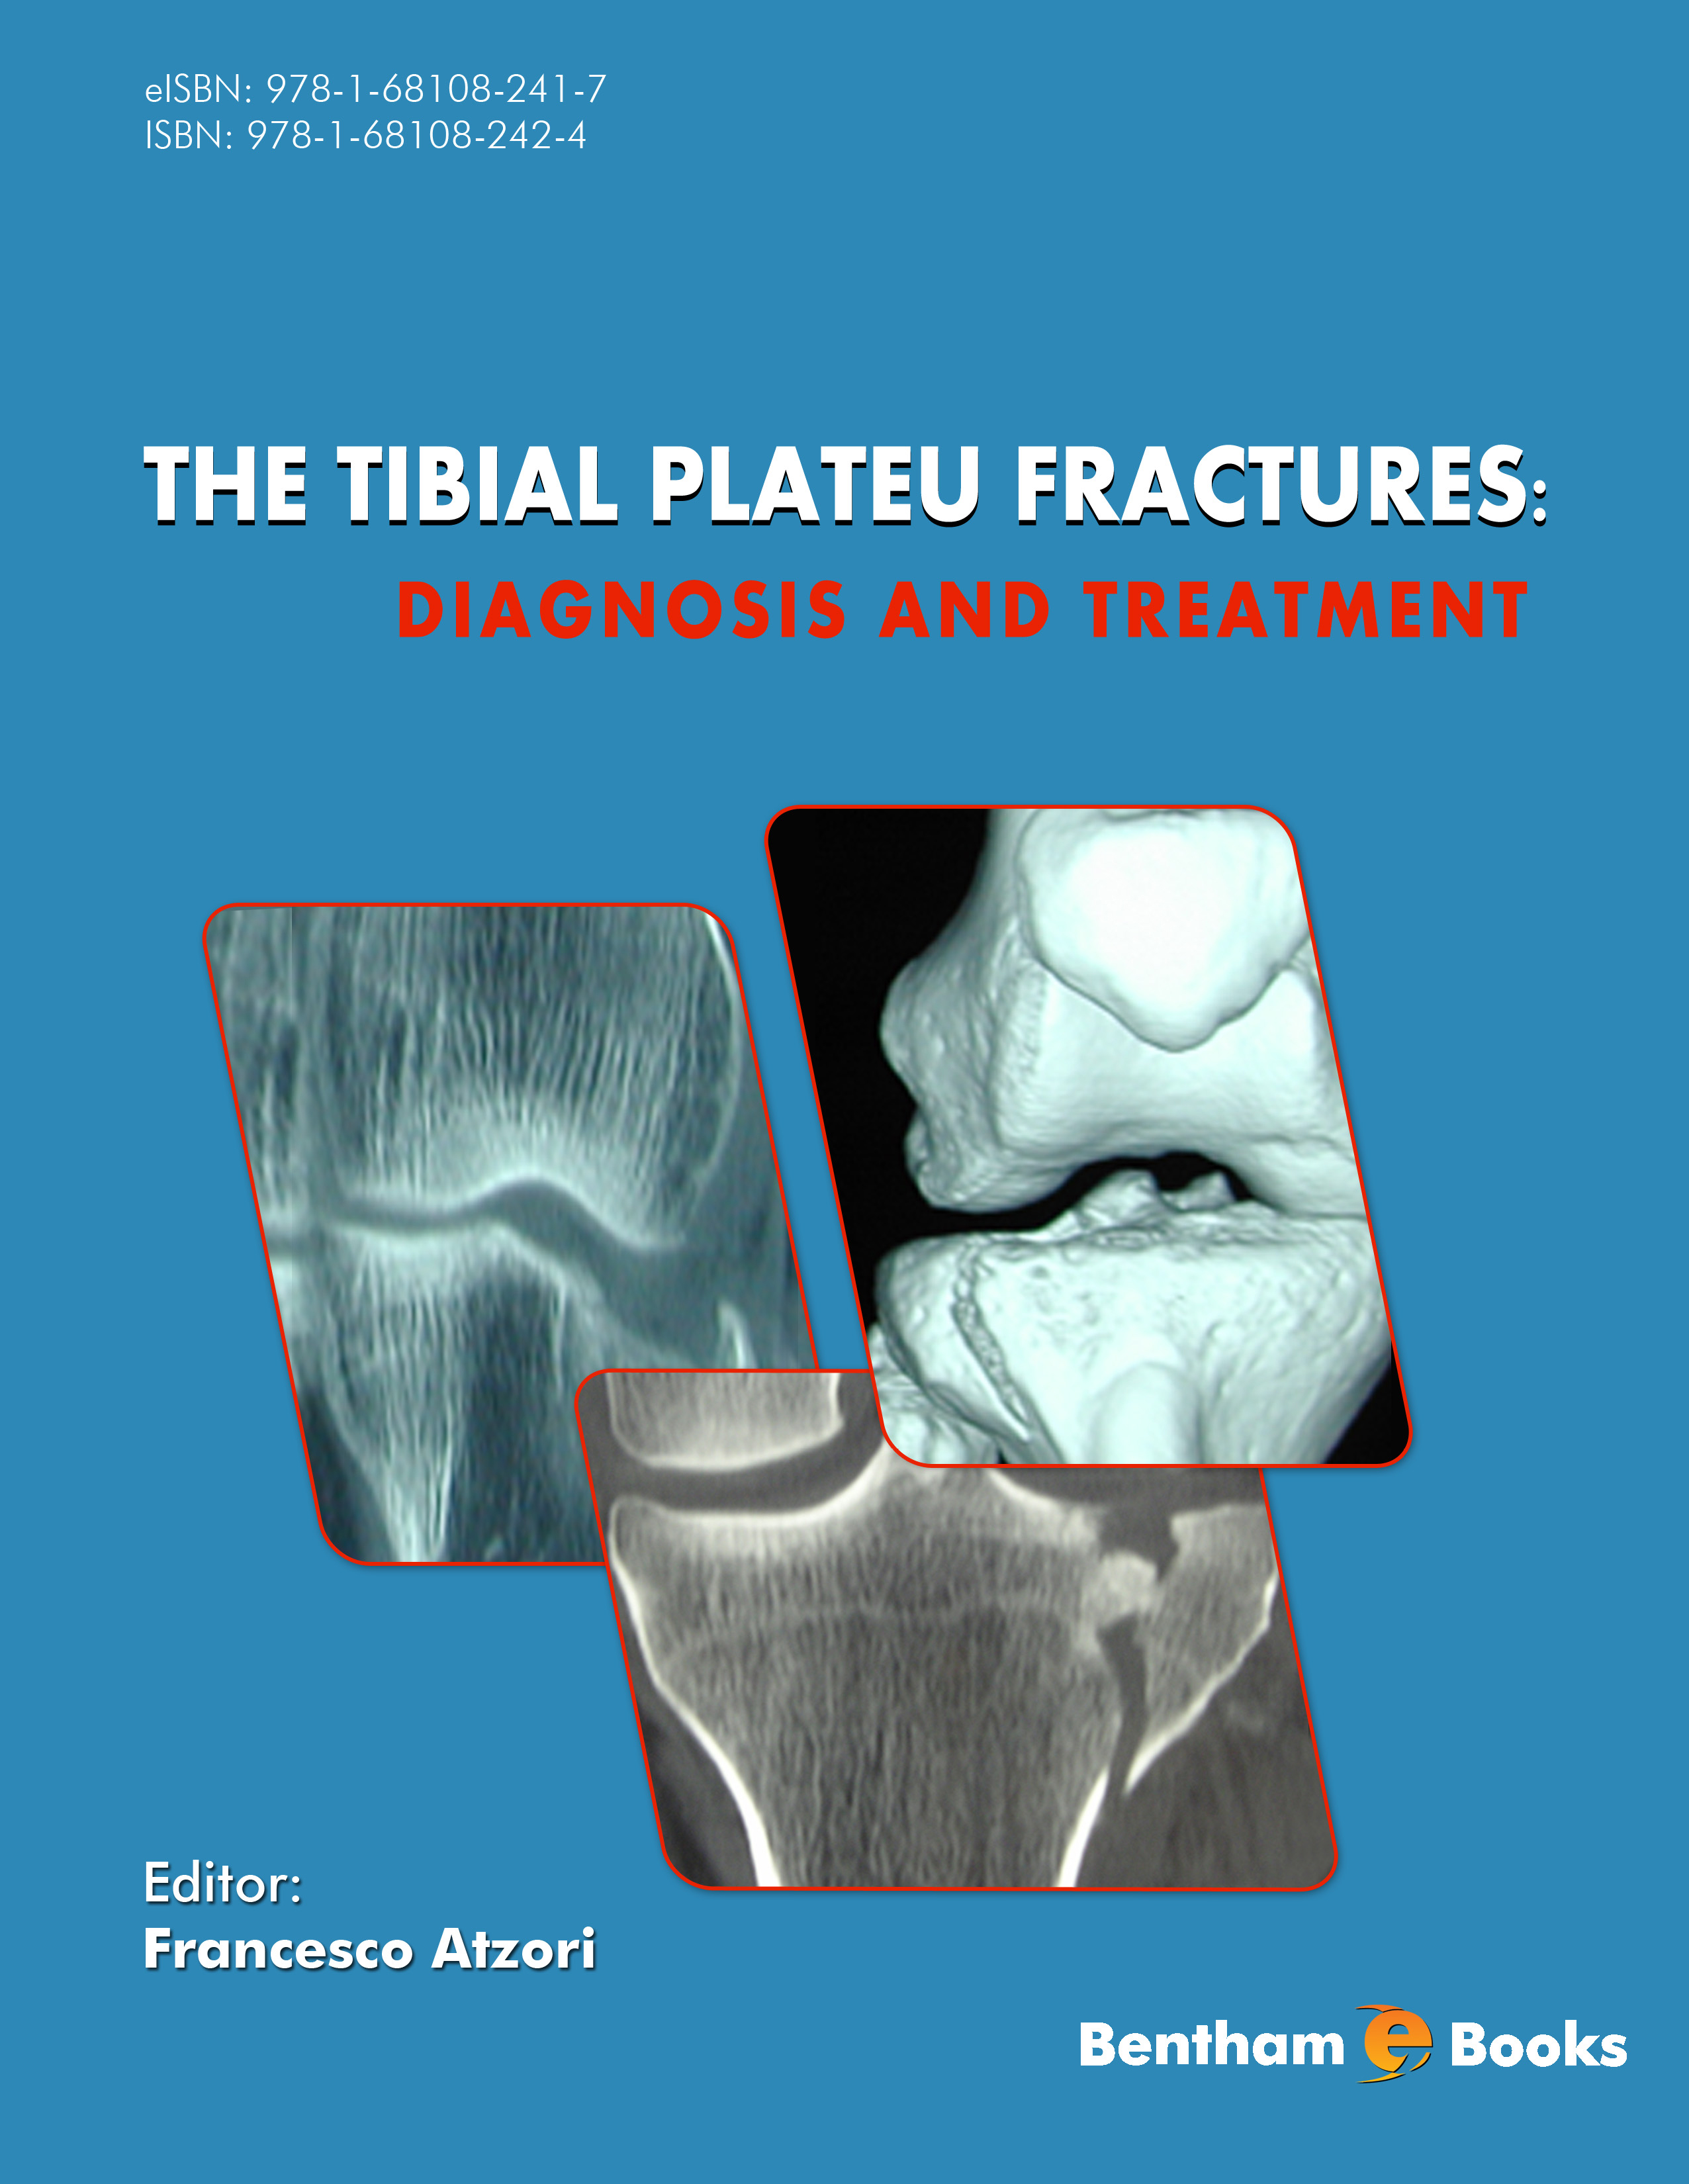 The Tibial Plateau Fractures: Diagnosis and Treatment